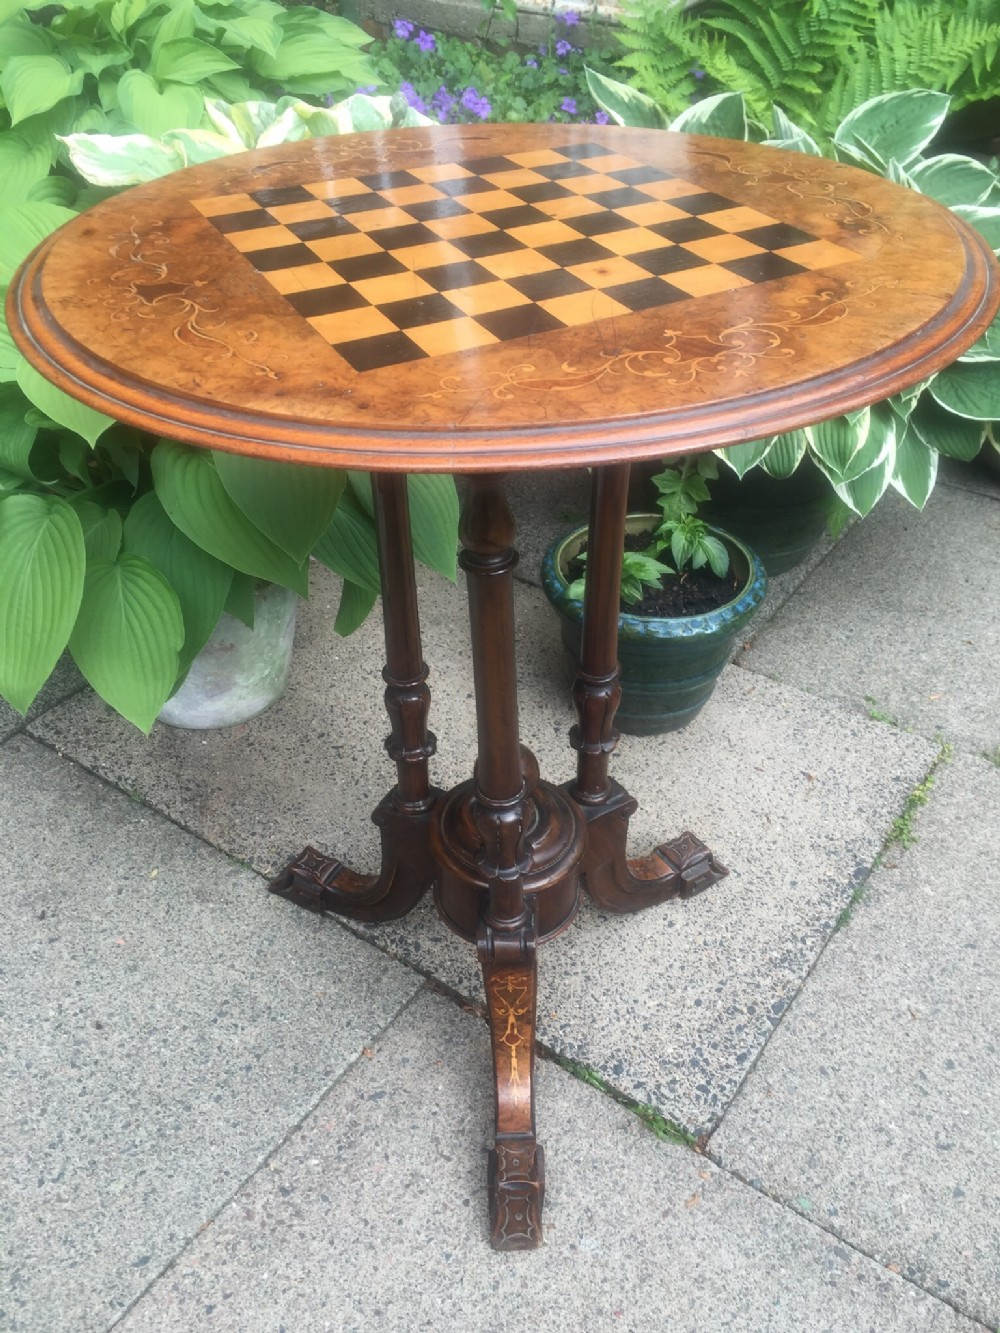 c19th victorian period walnut circular occasional table with inlaid chequerboard games top